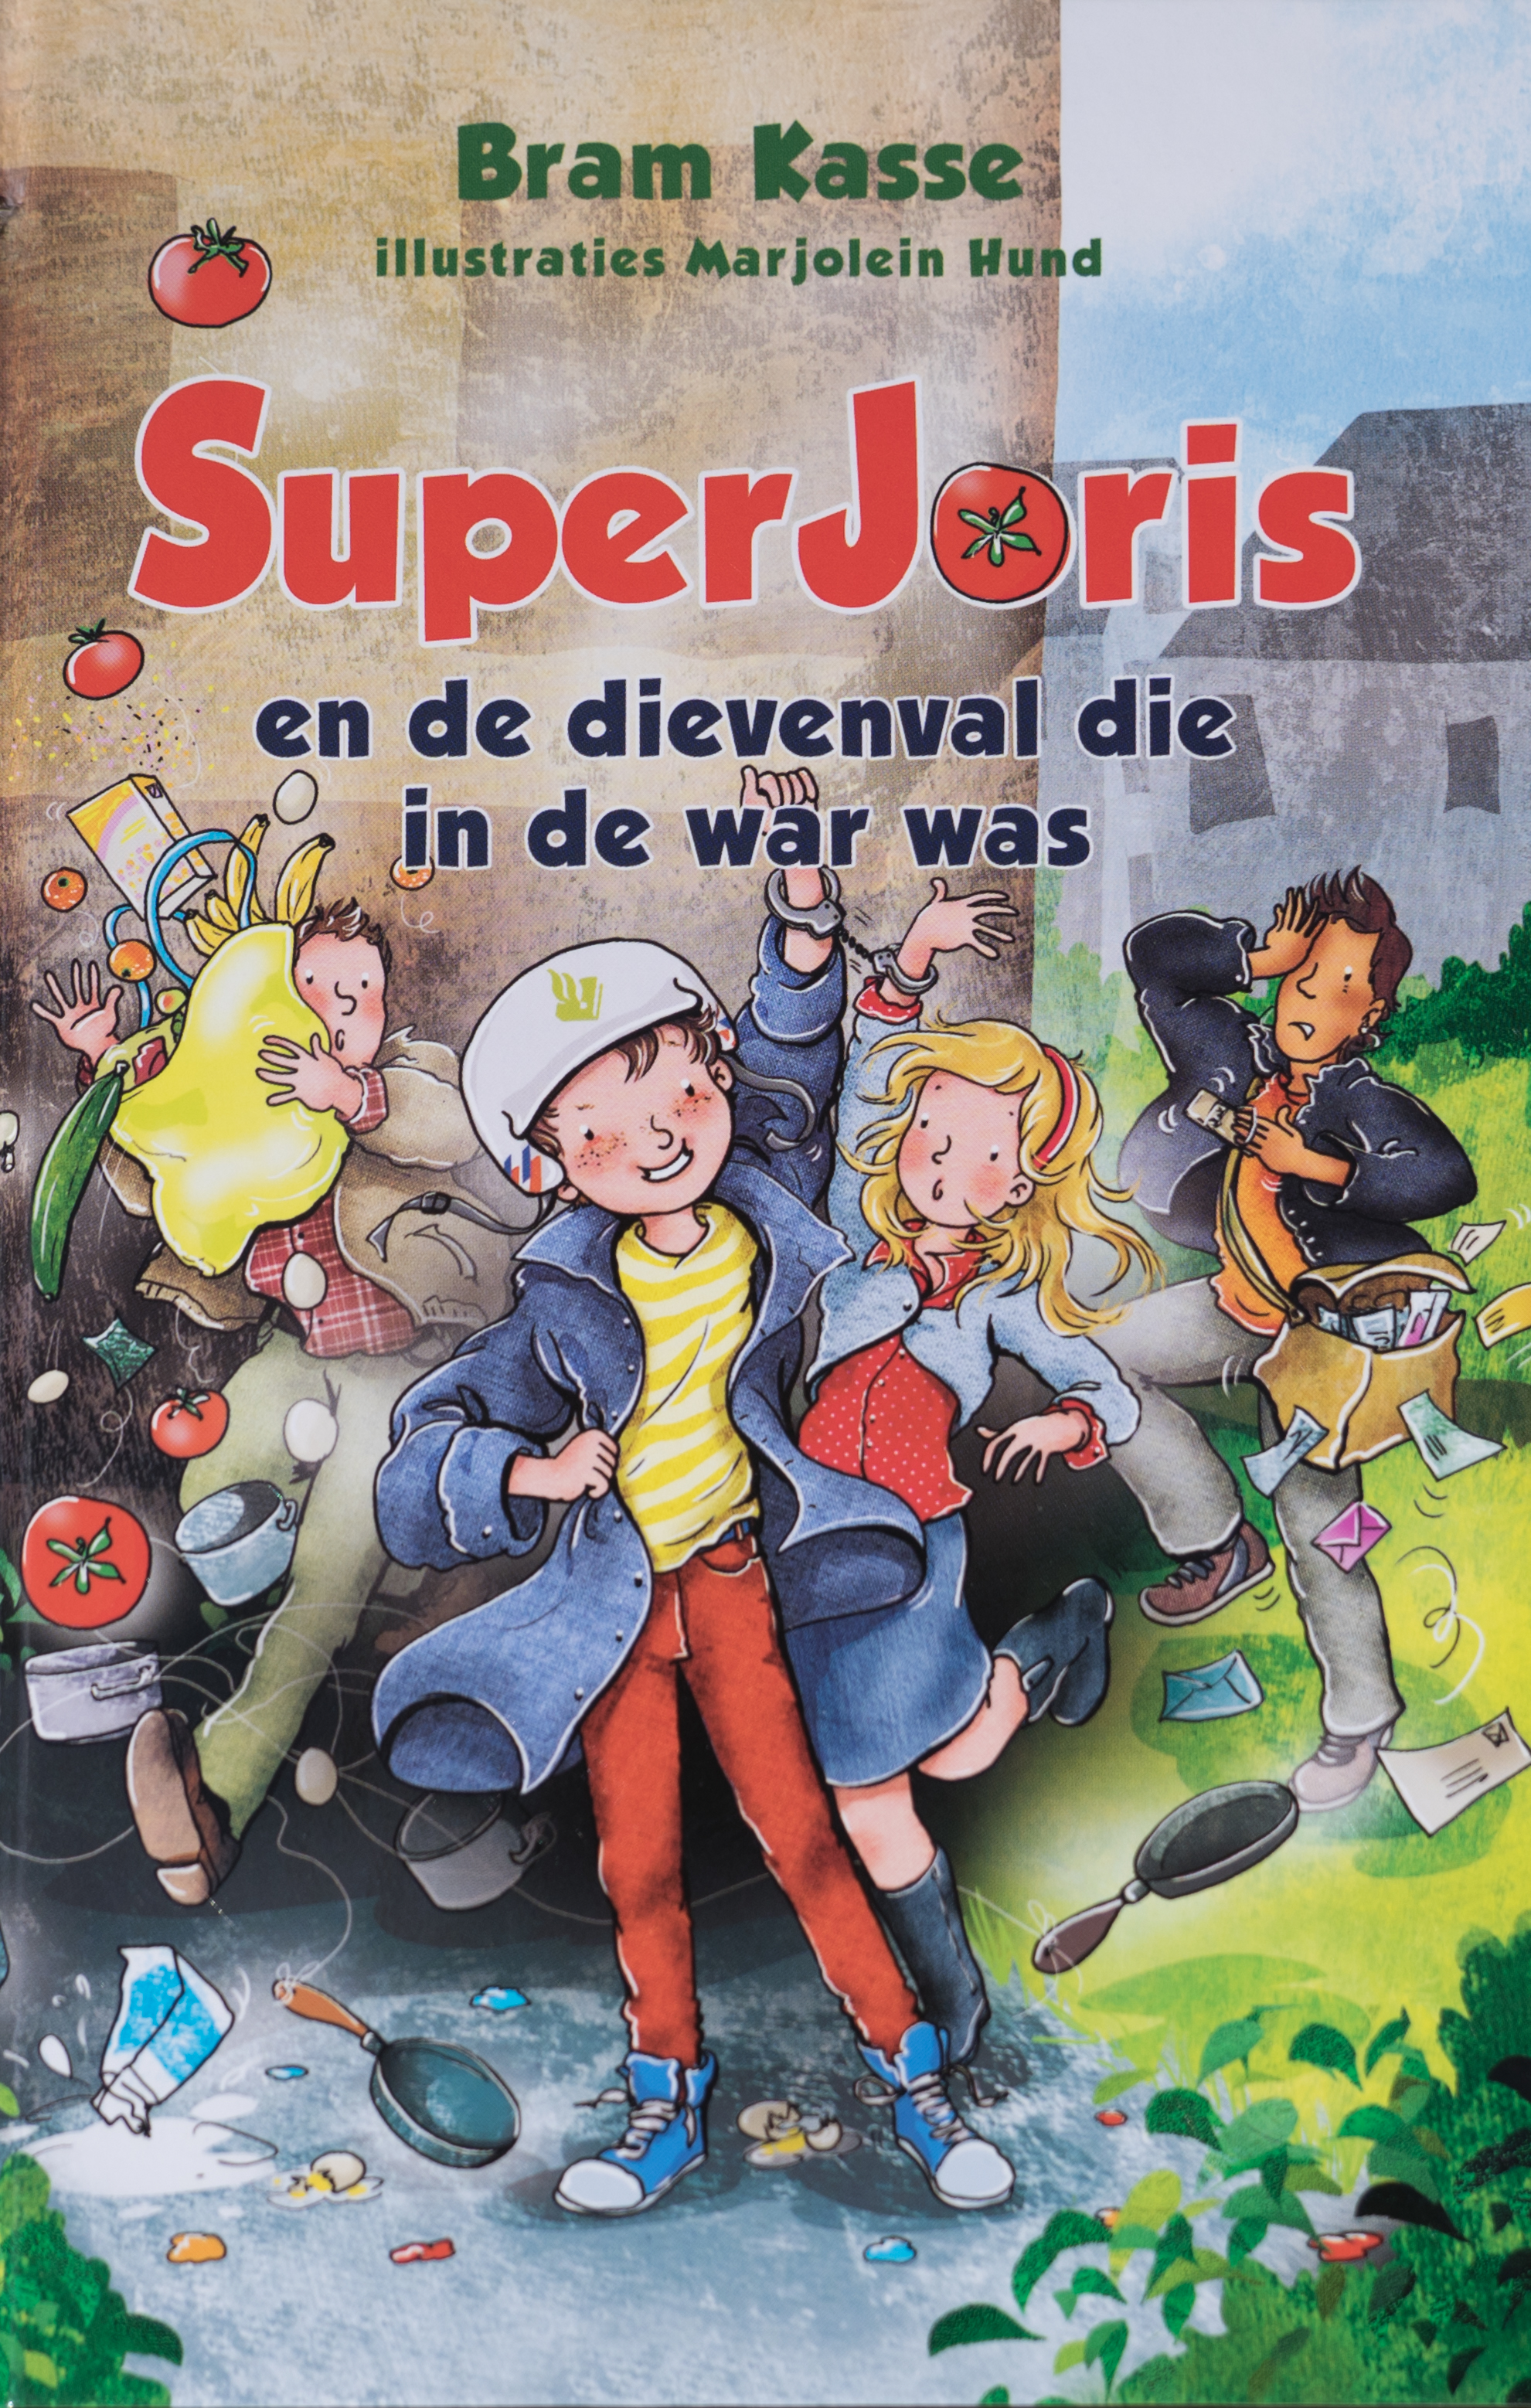 SUPERJORIS en de dievenval die in de war was – deel 2